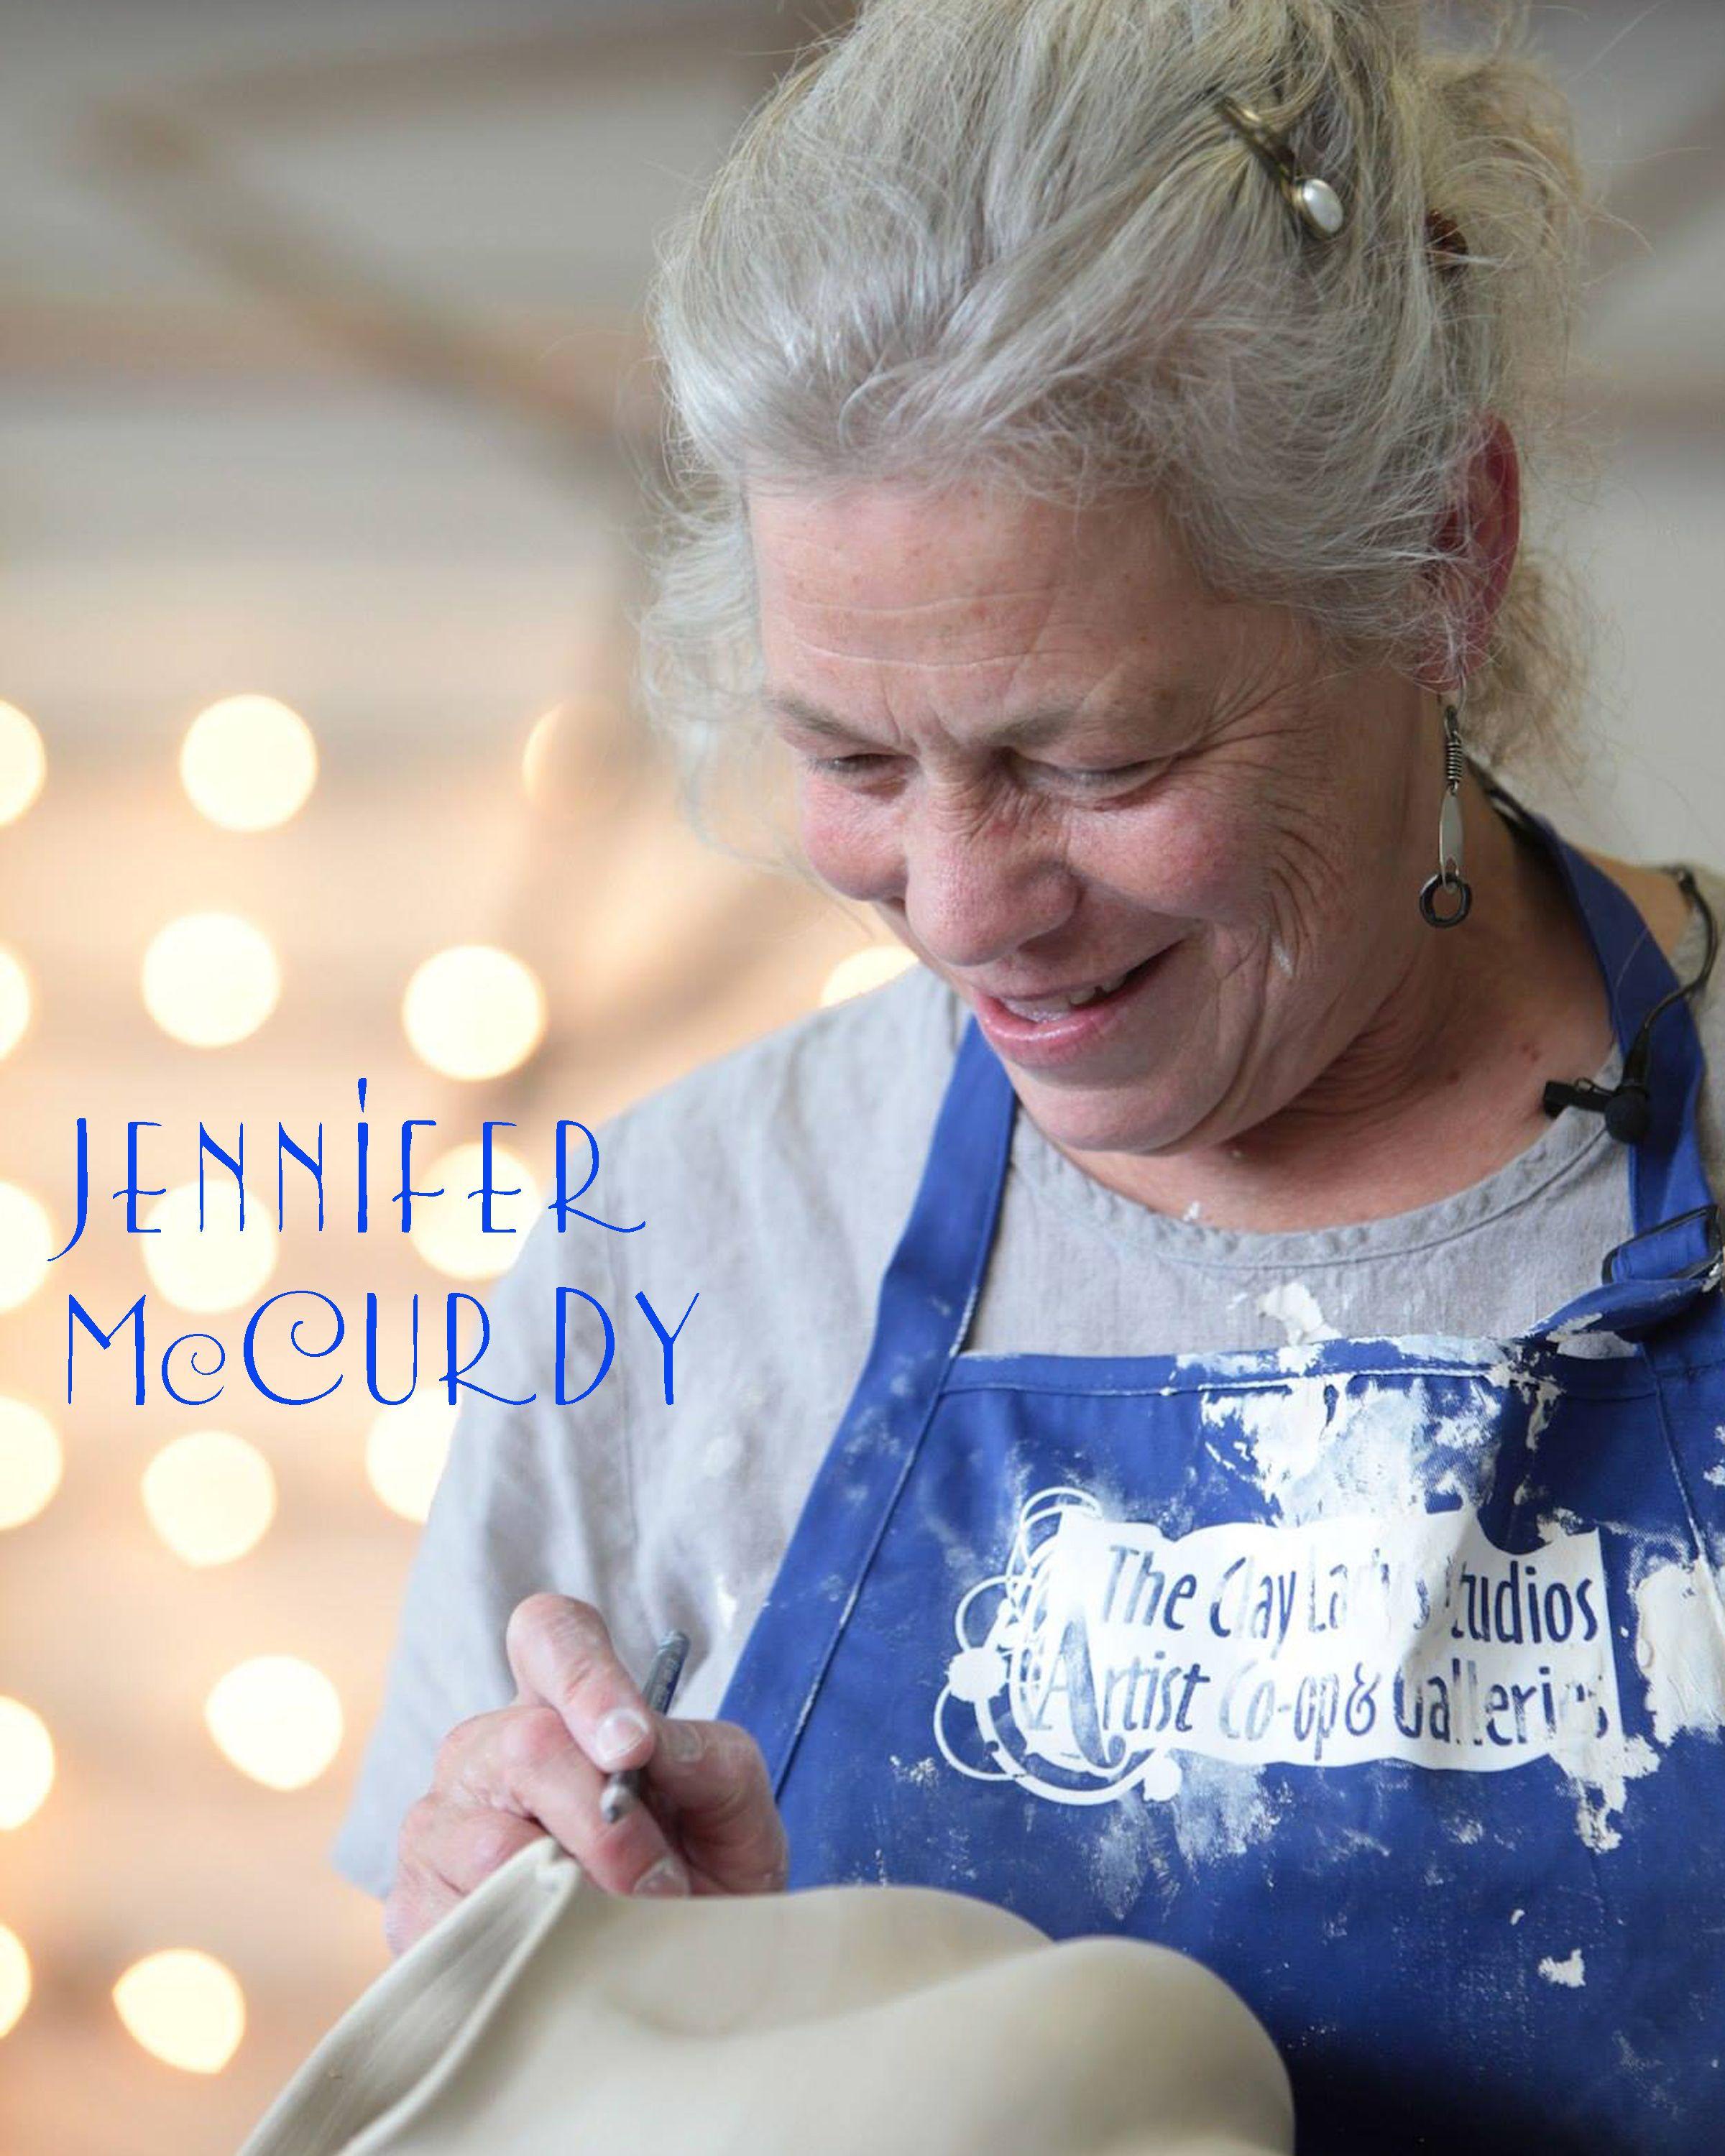 Jennifer mccurdy at the clay ladys campus pottery